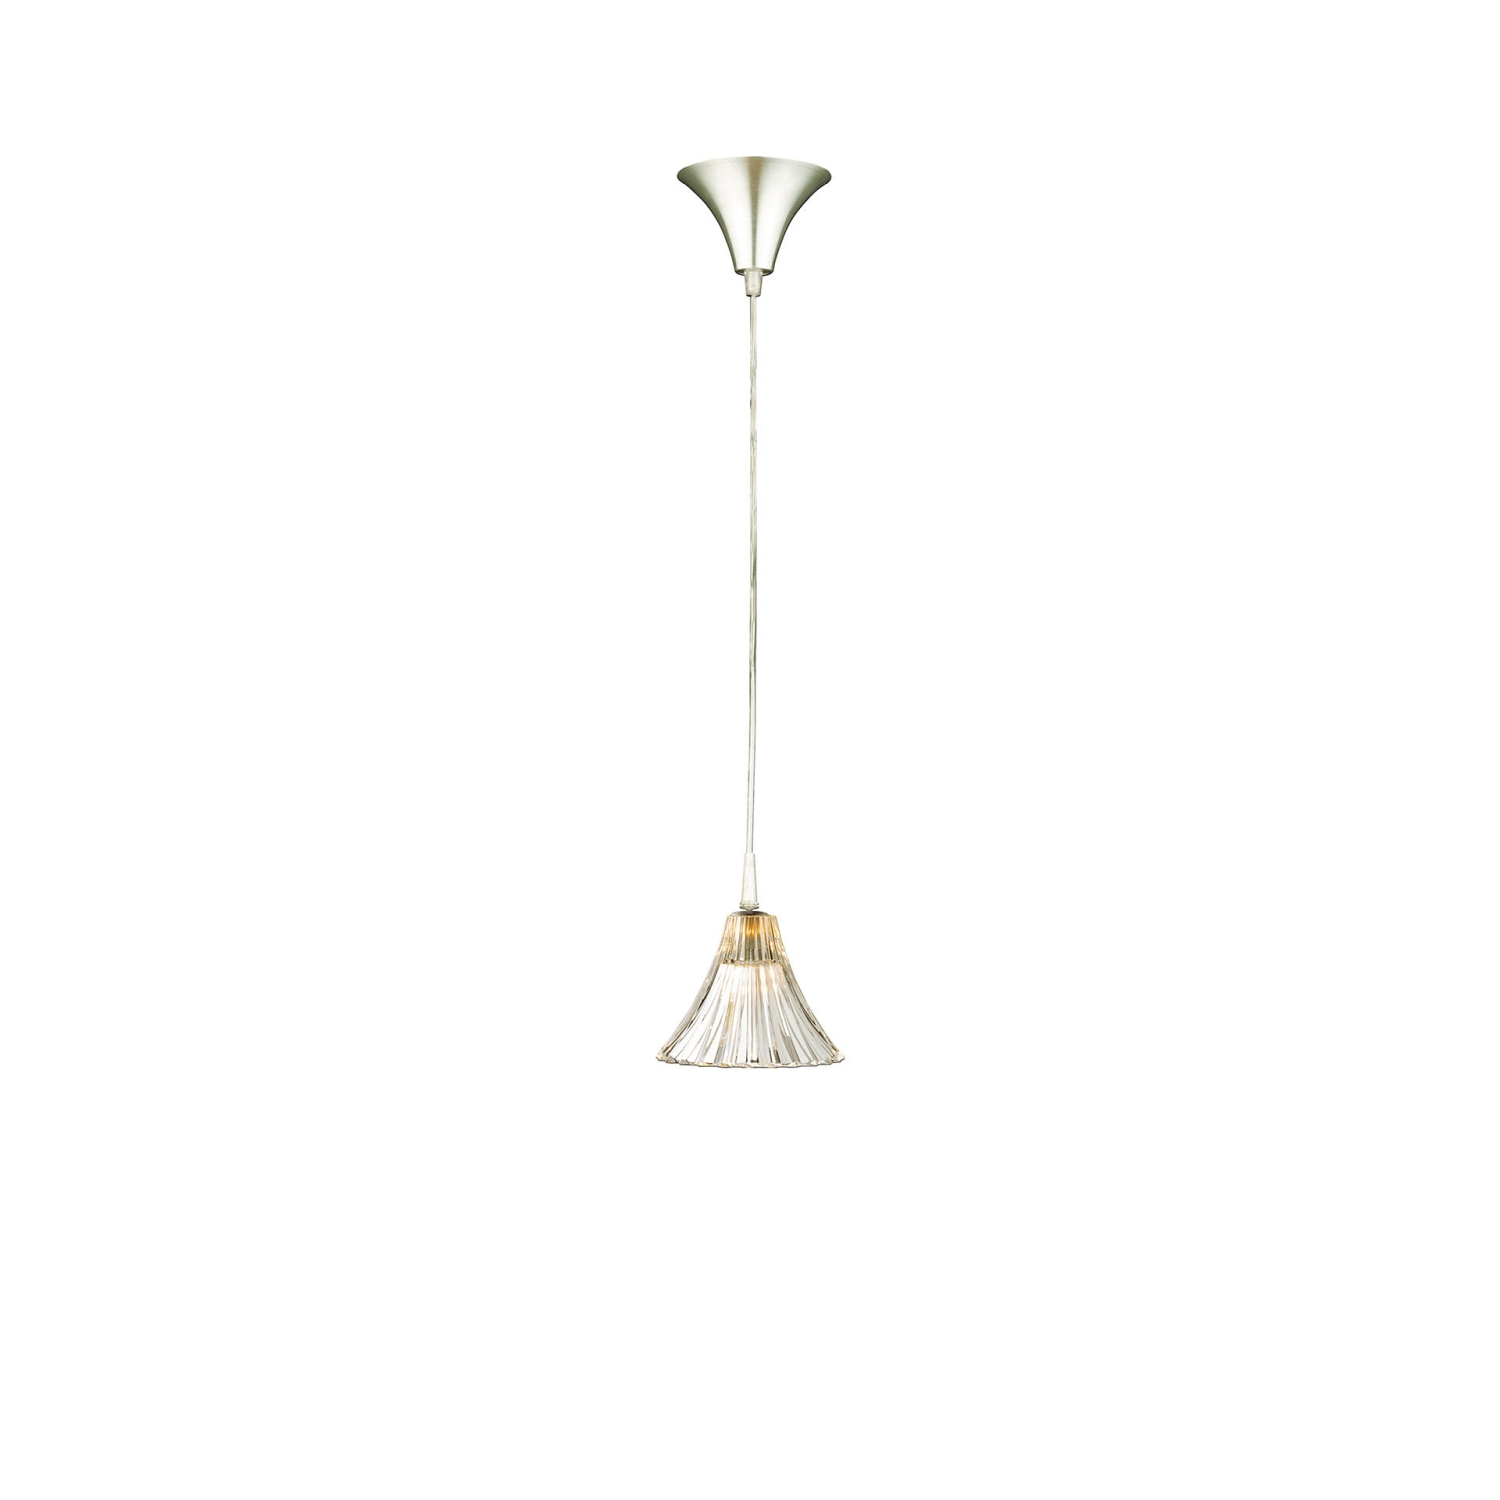 contemporary lamp lamps pic furniture with ideas interesting clear glass table base design